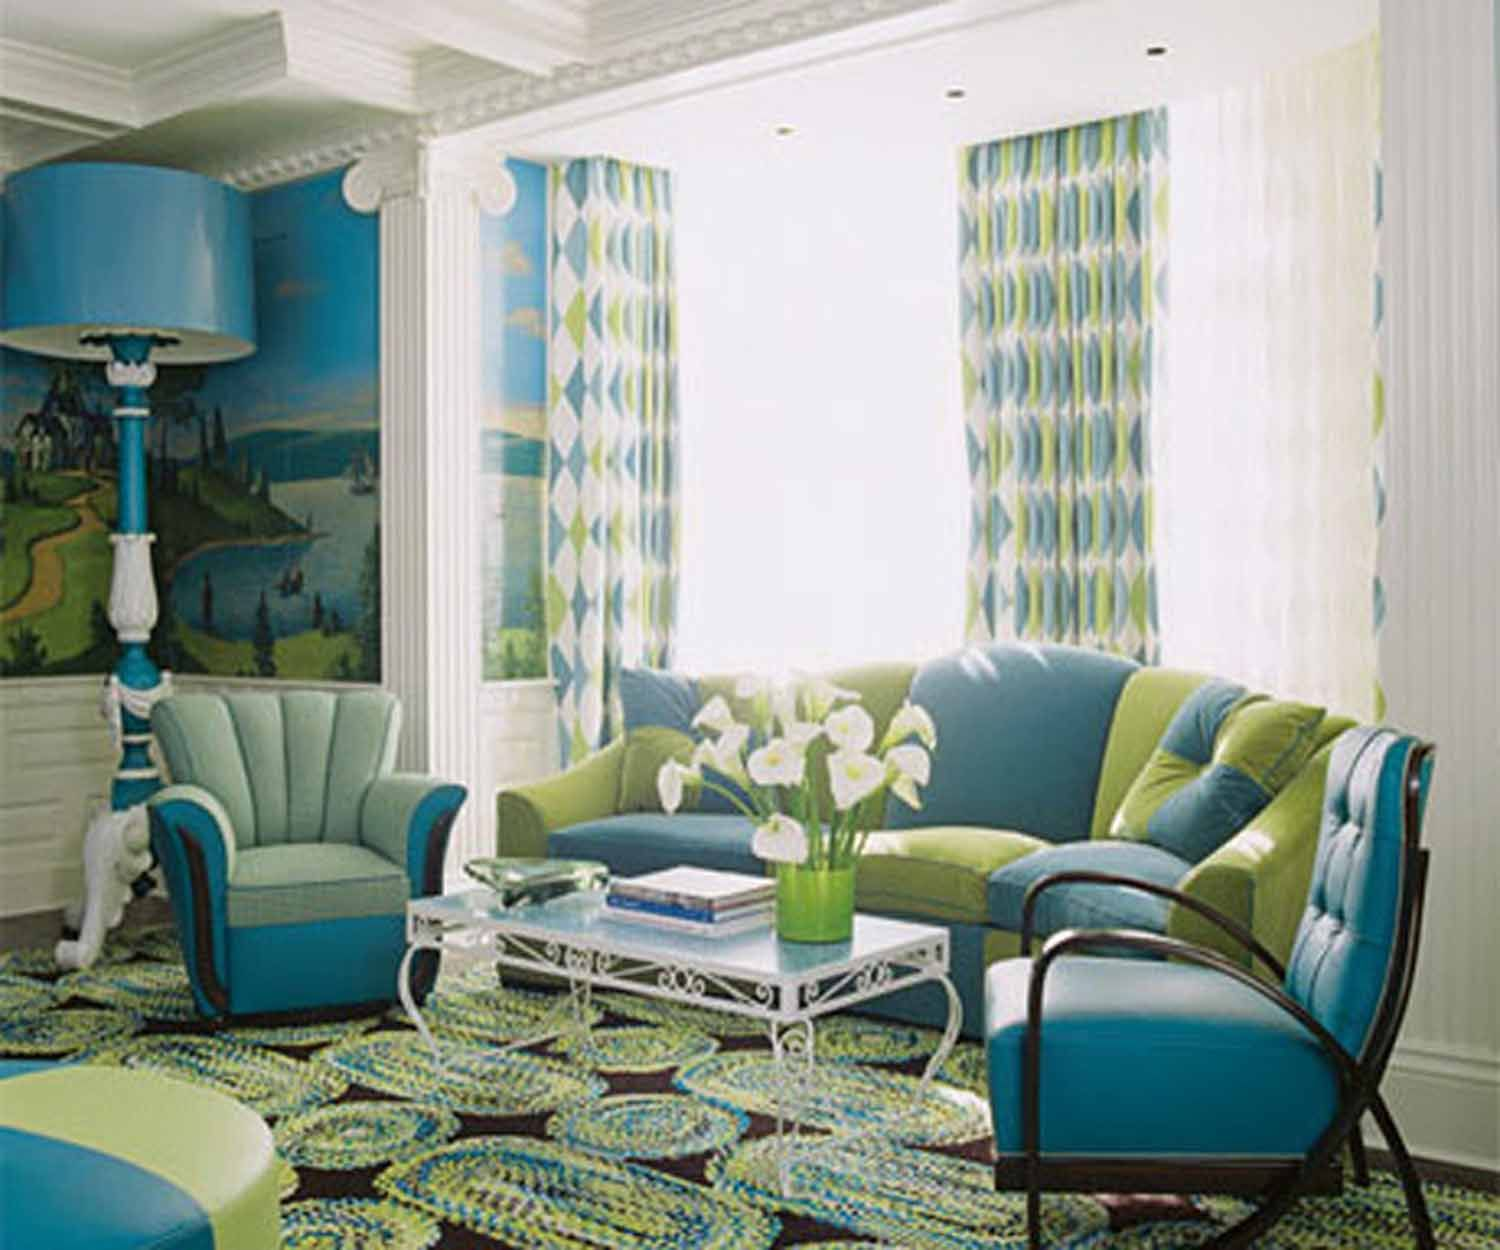 Living Room Green And Blue Rooms 1000 images about home decor on pinterest green living rooms blue and rooms